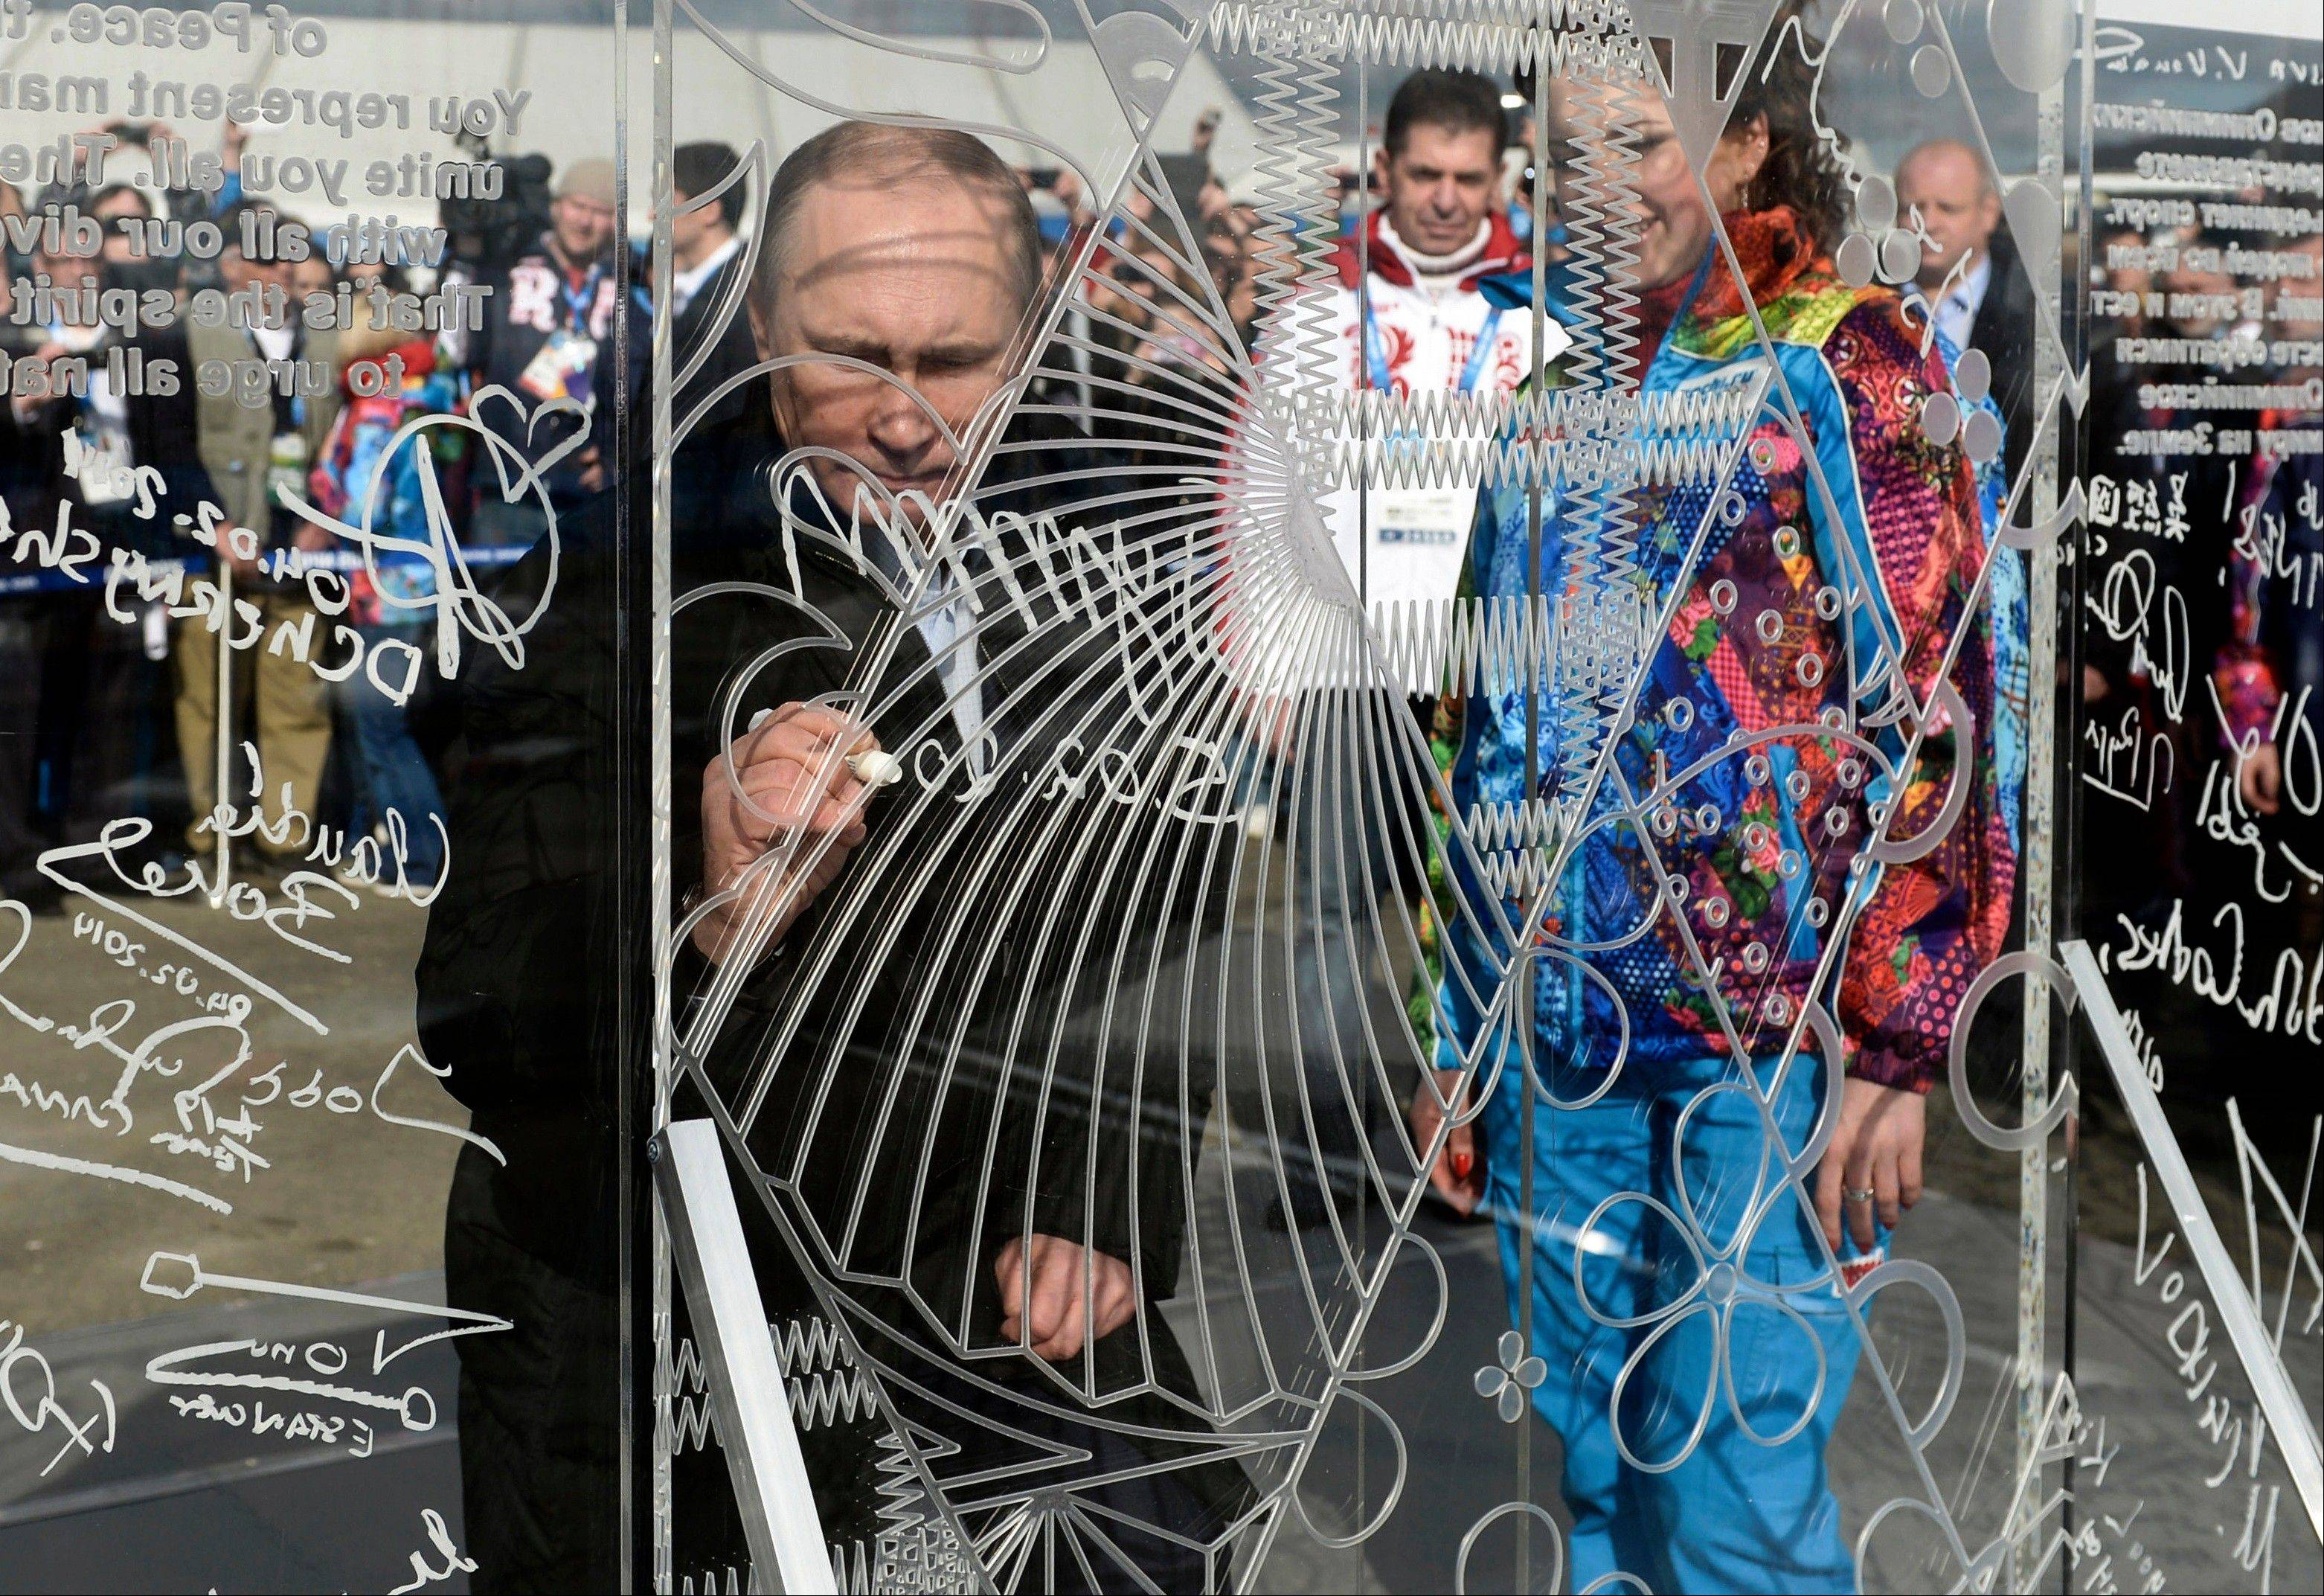 Russian President Vladimir Putin signs a wall while visiting the Coastal Cluster Olympic Village ahead of the Sochi 2014 Winter Olympics on Wednesday in Sochi, Russia.